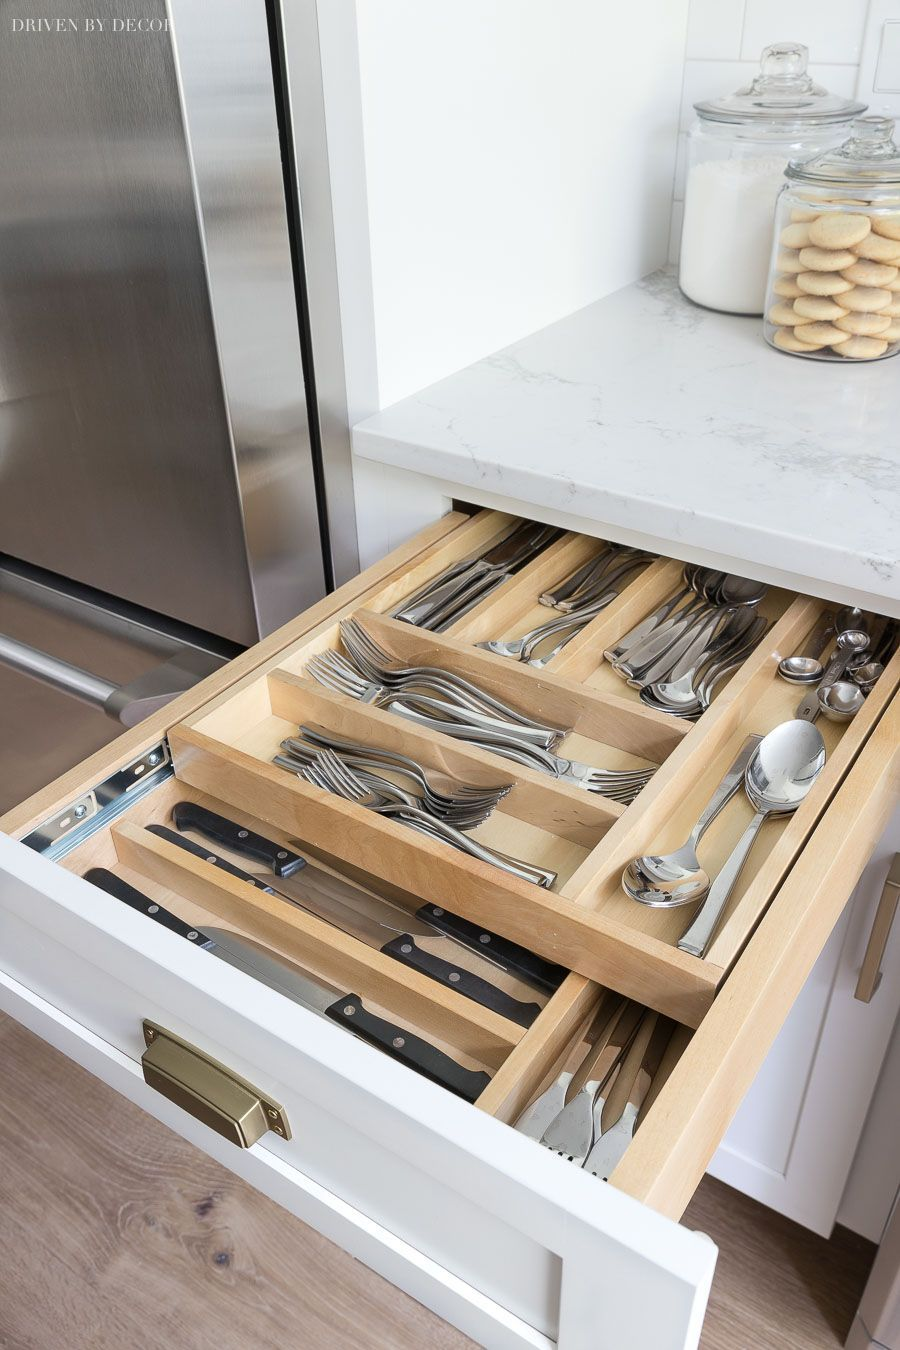 Two tiered divided cutlery drawer - put your most used silverware